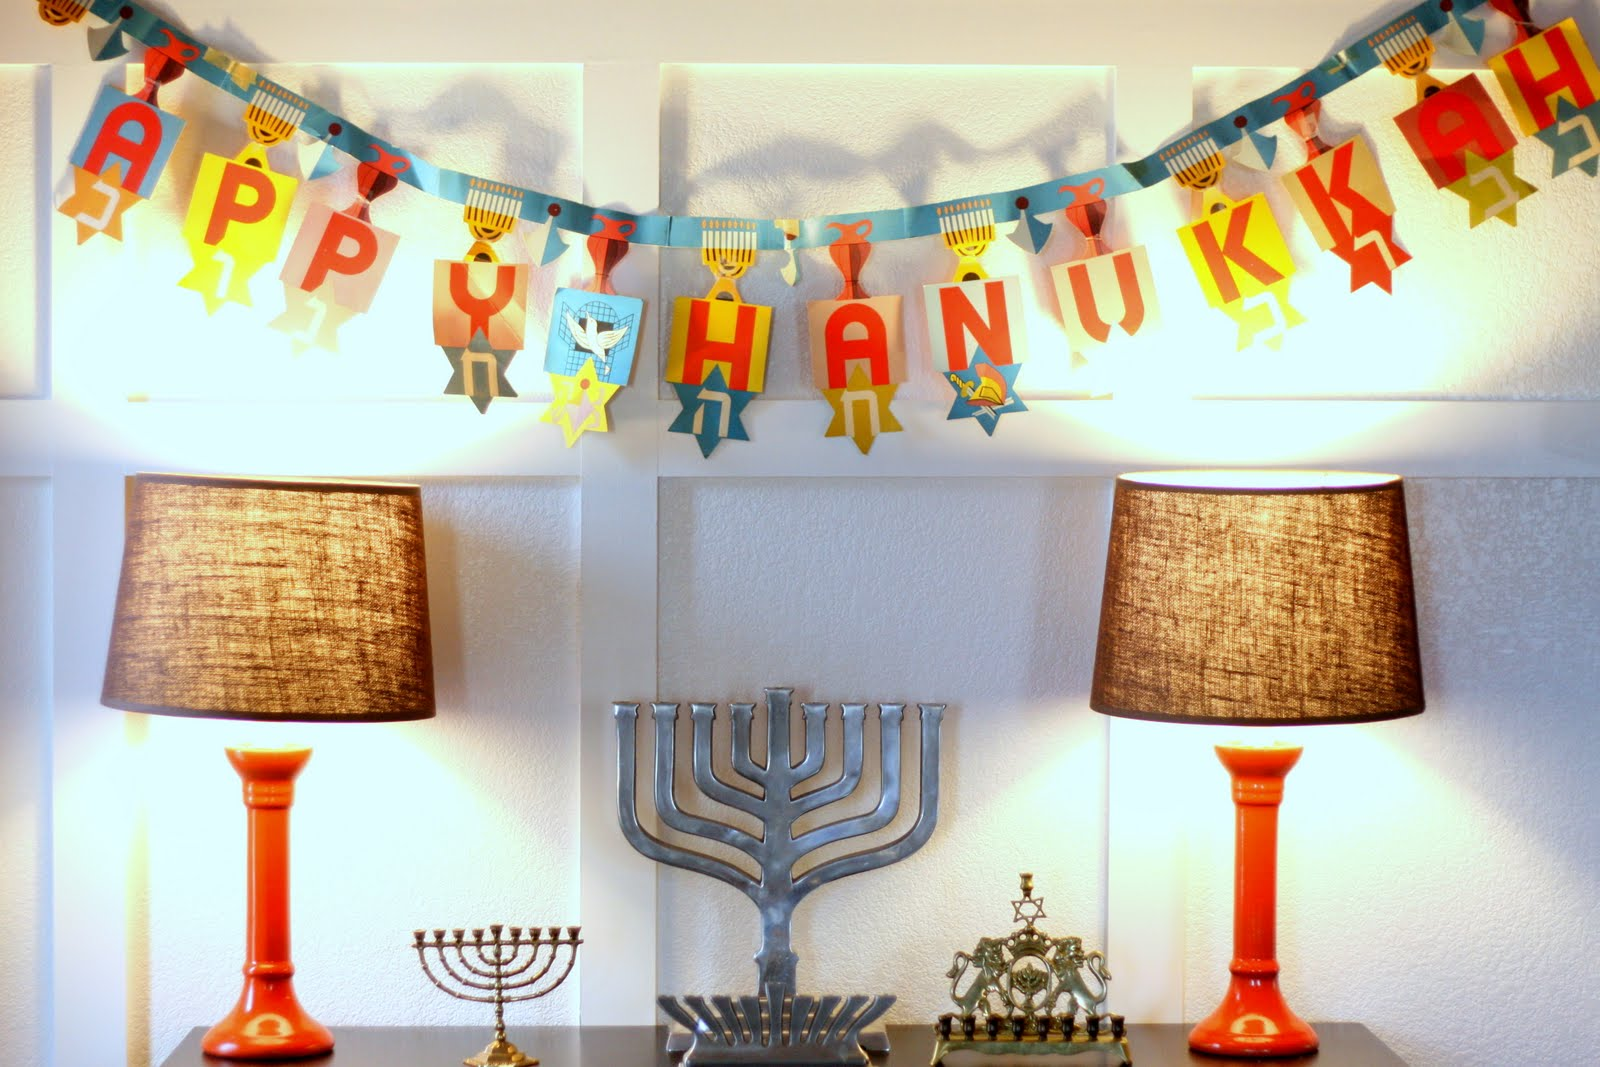 Hanukkah Lights Decorations